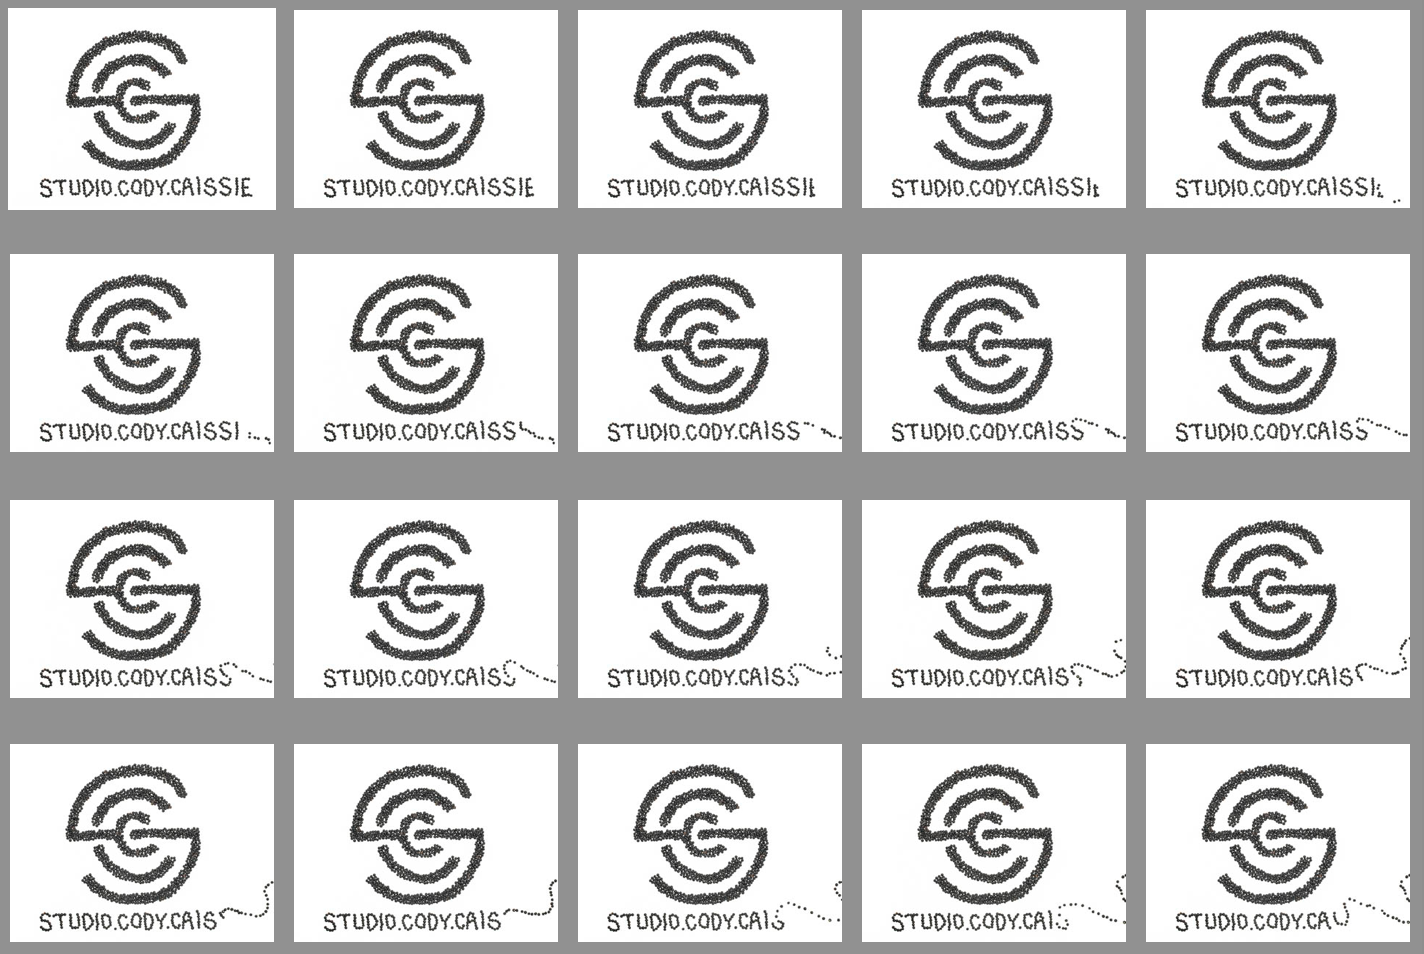 GIF vs. Stop Motion Studio Cody Caissie logo example of a stop motion animation